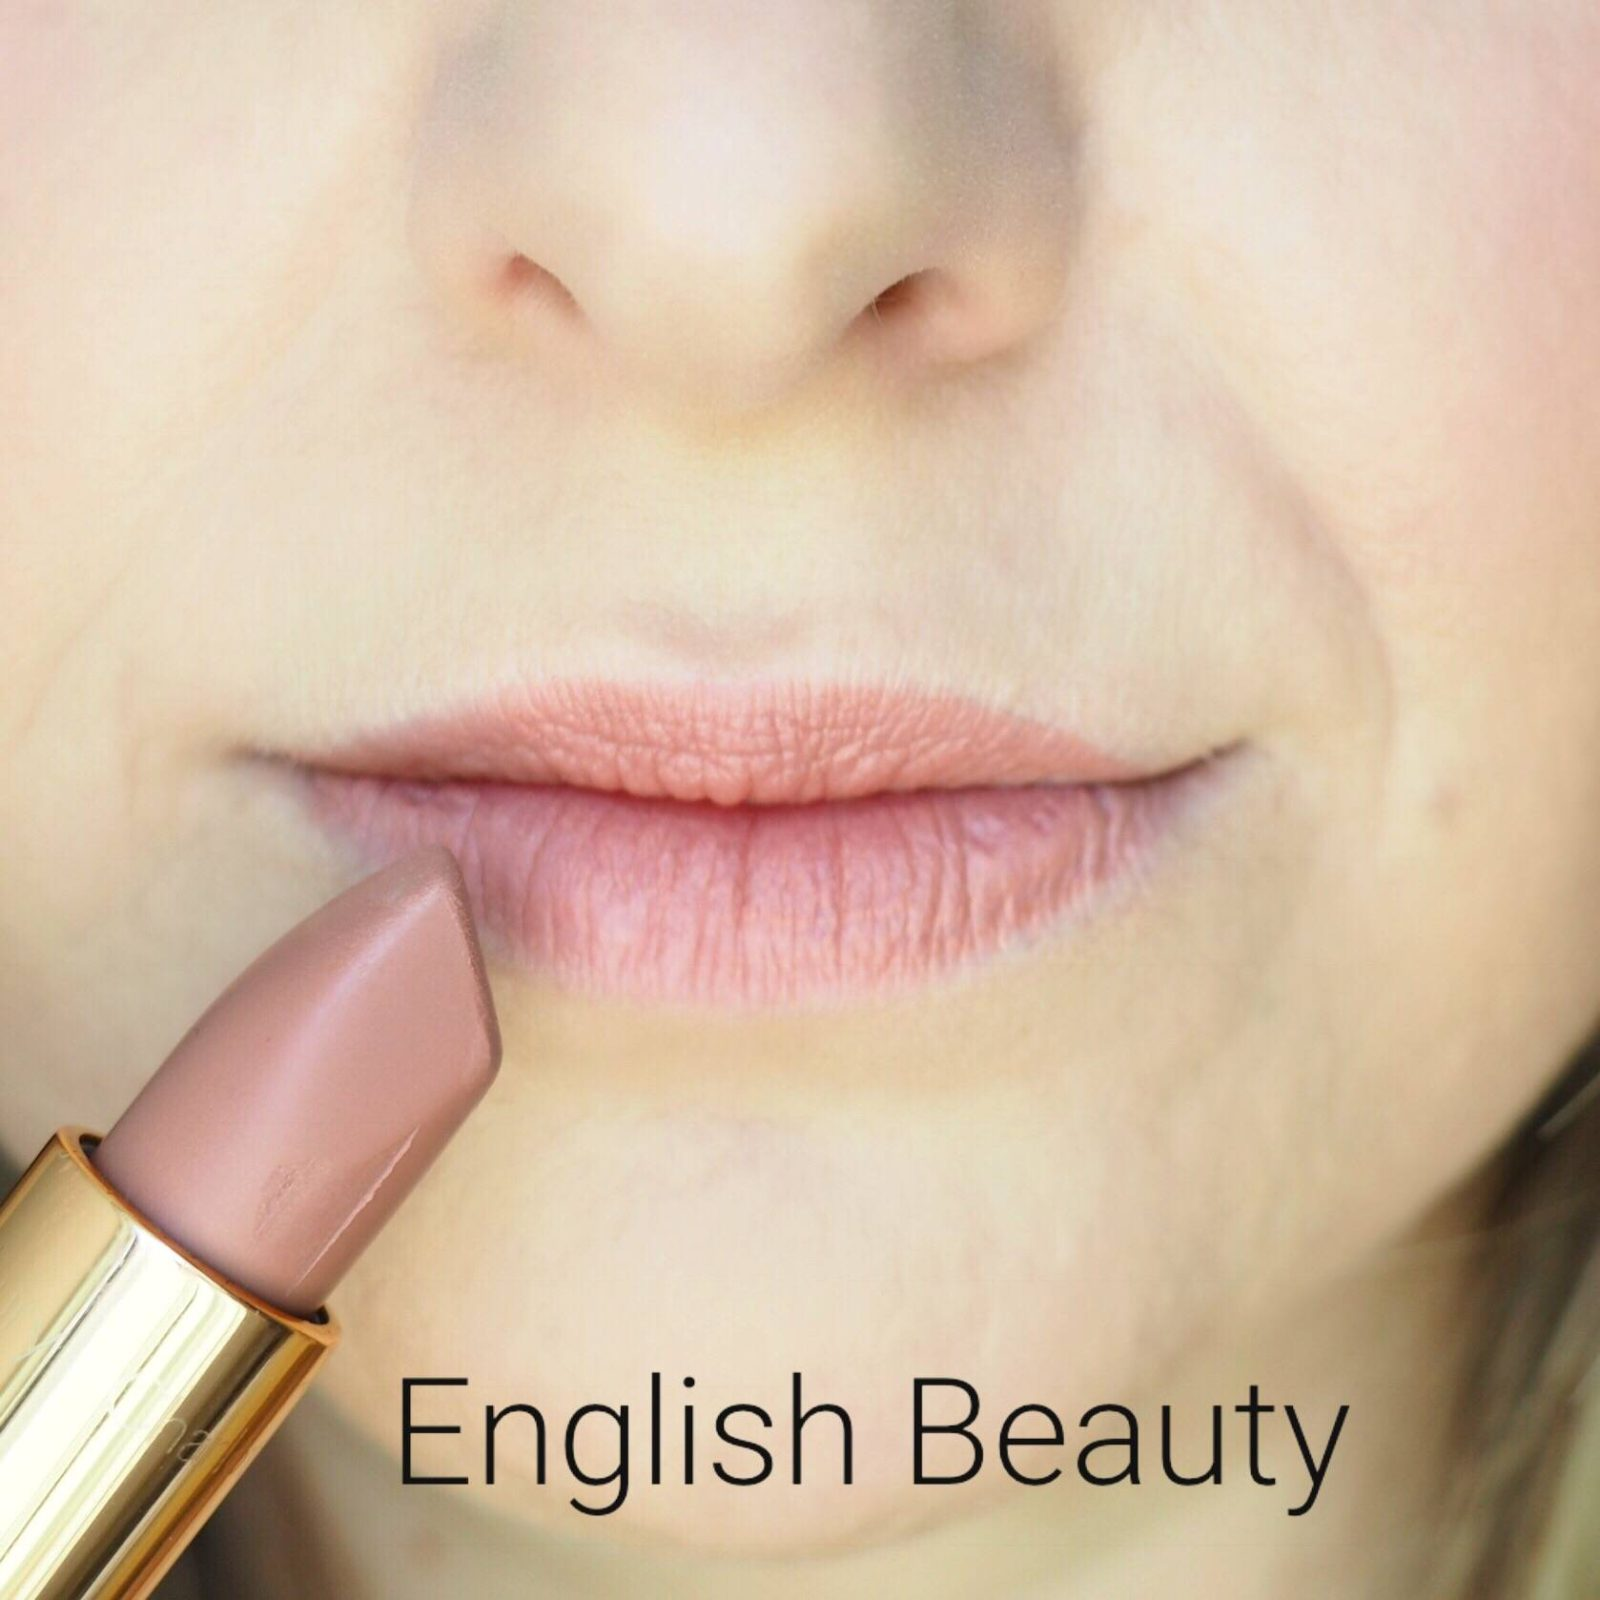 Charlotte Tilbury English Beauty Lipstick Swatches